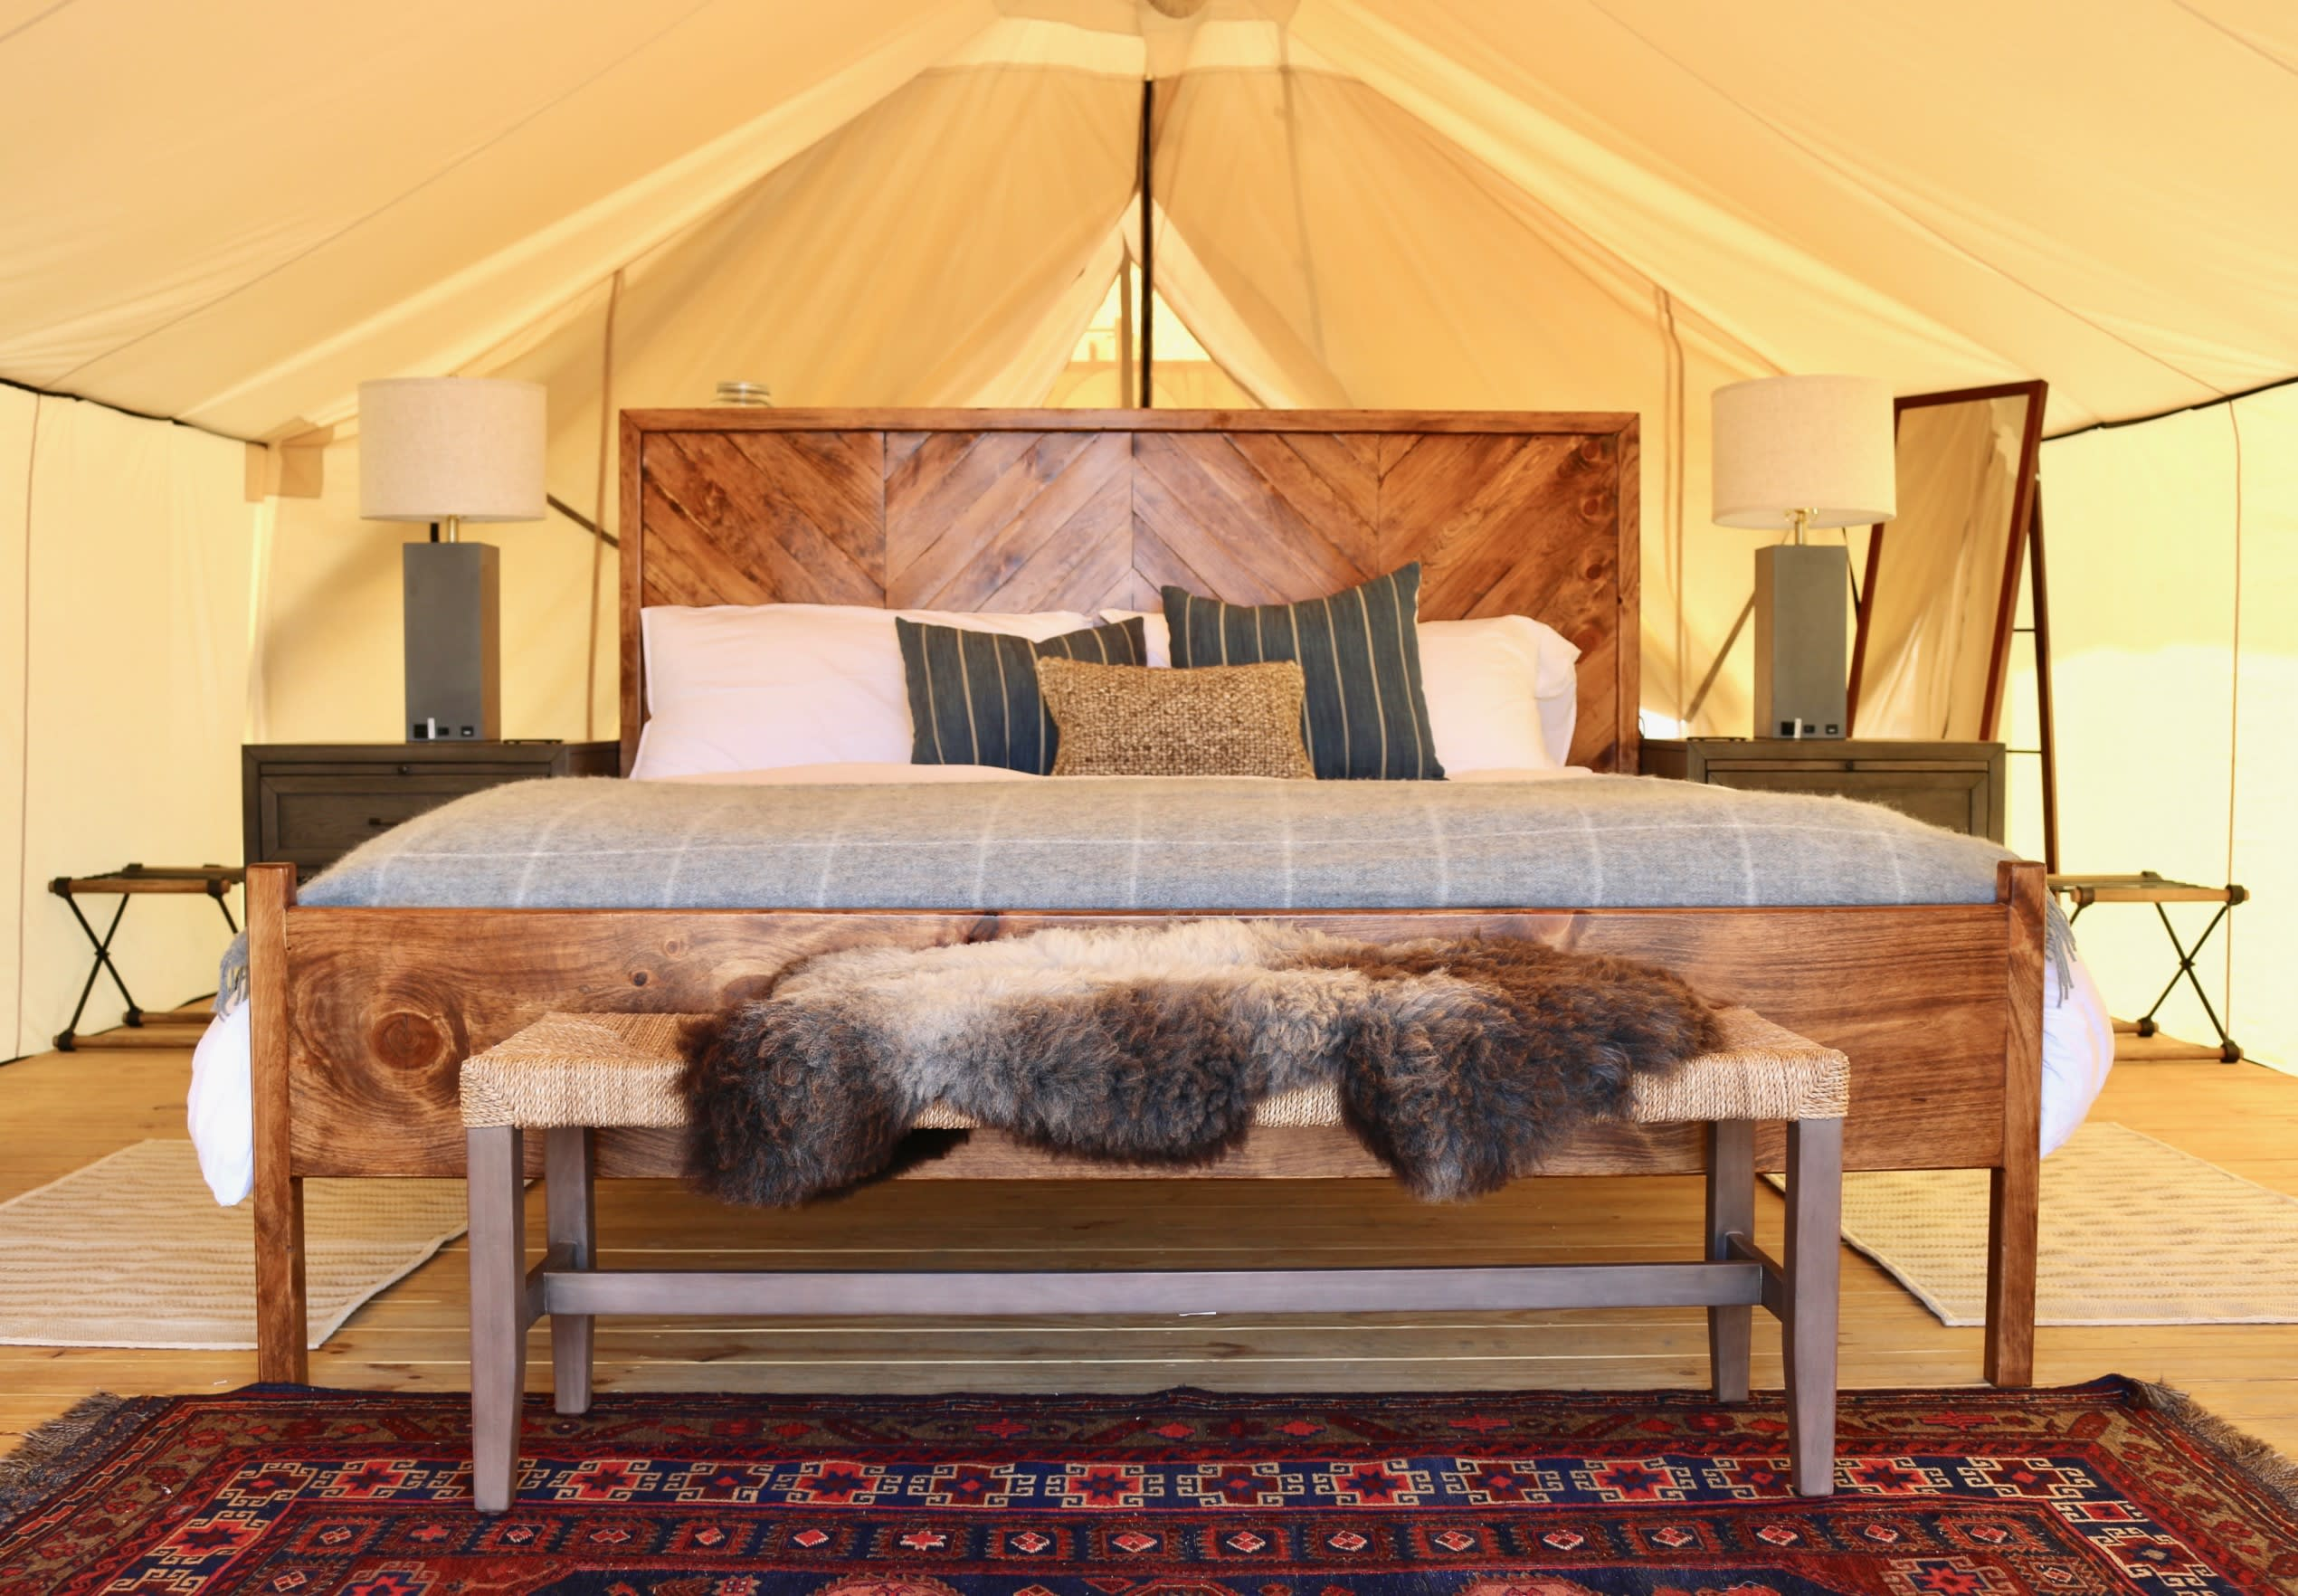 the inside of a camping yurt with luxury design features throughout